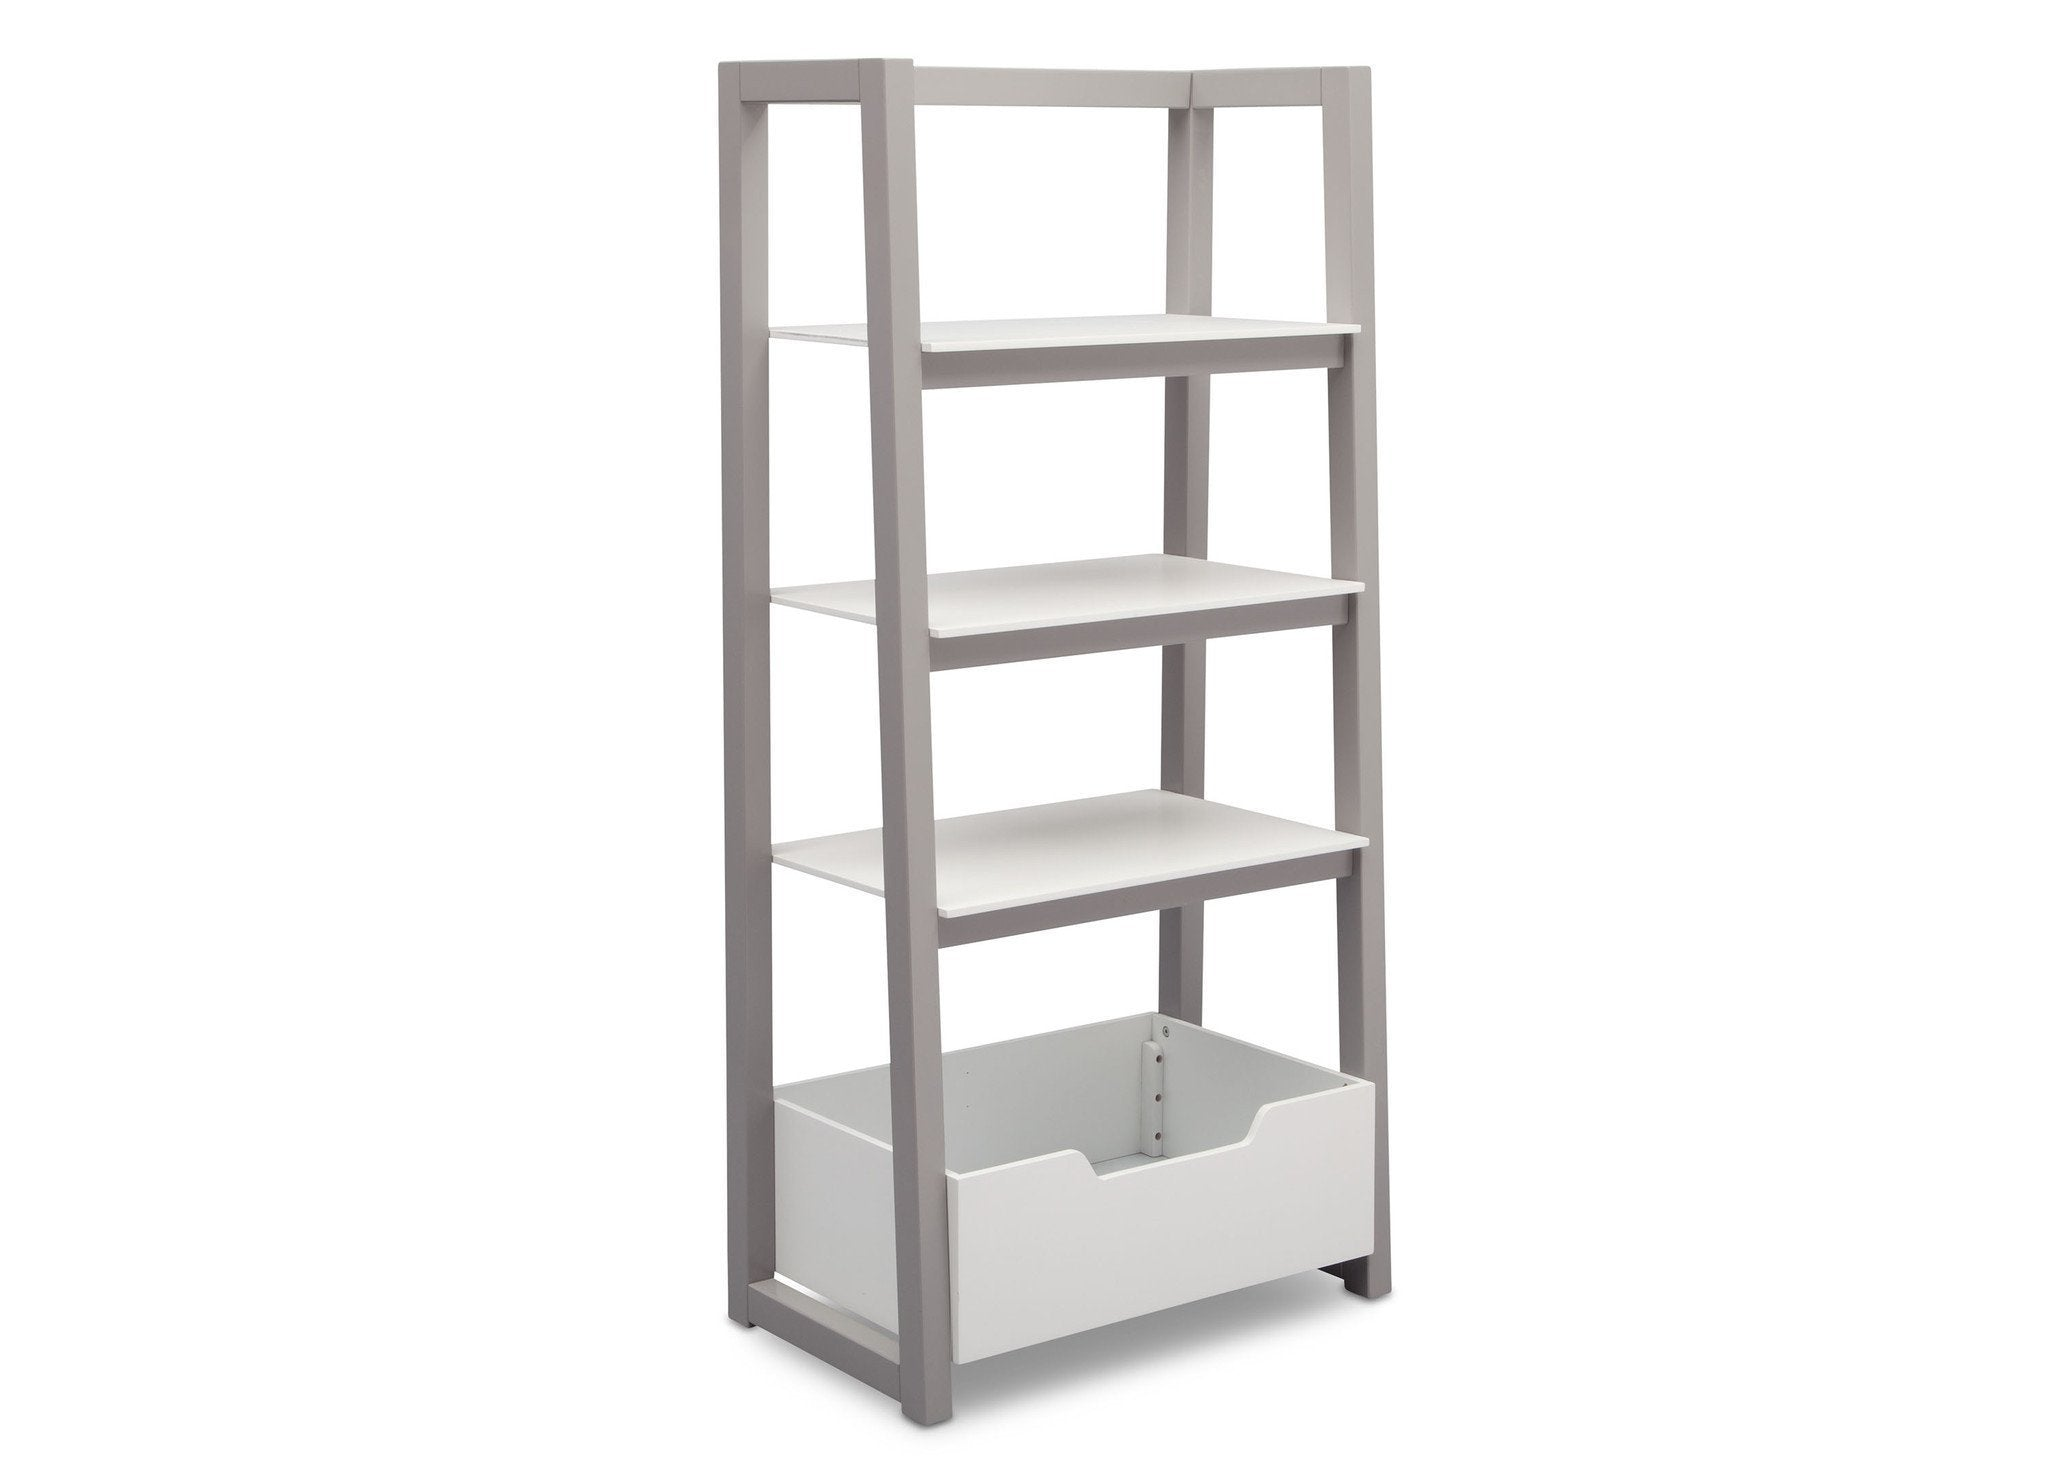 Delta Children Bianca White with Grey (166) Gateway Ladder Shelf, Angled View a3a